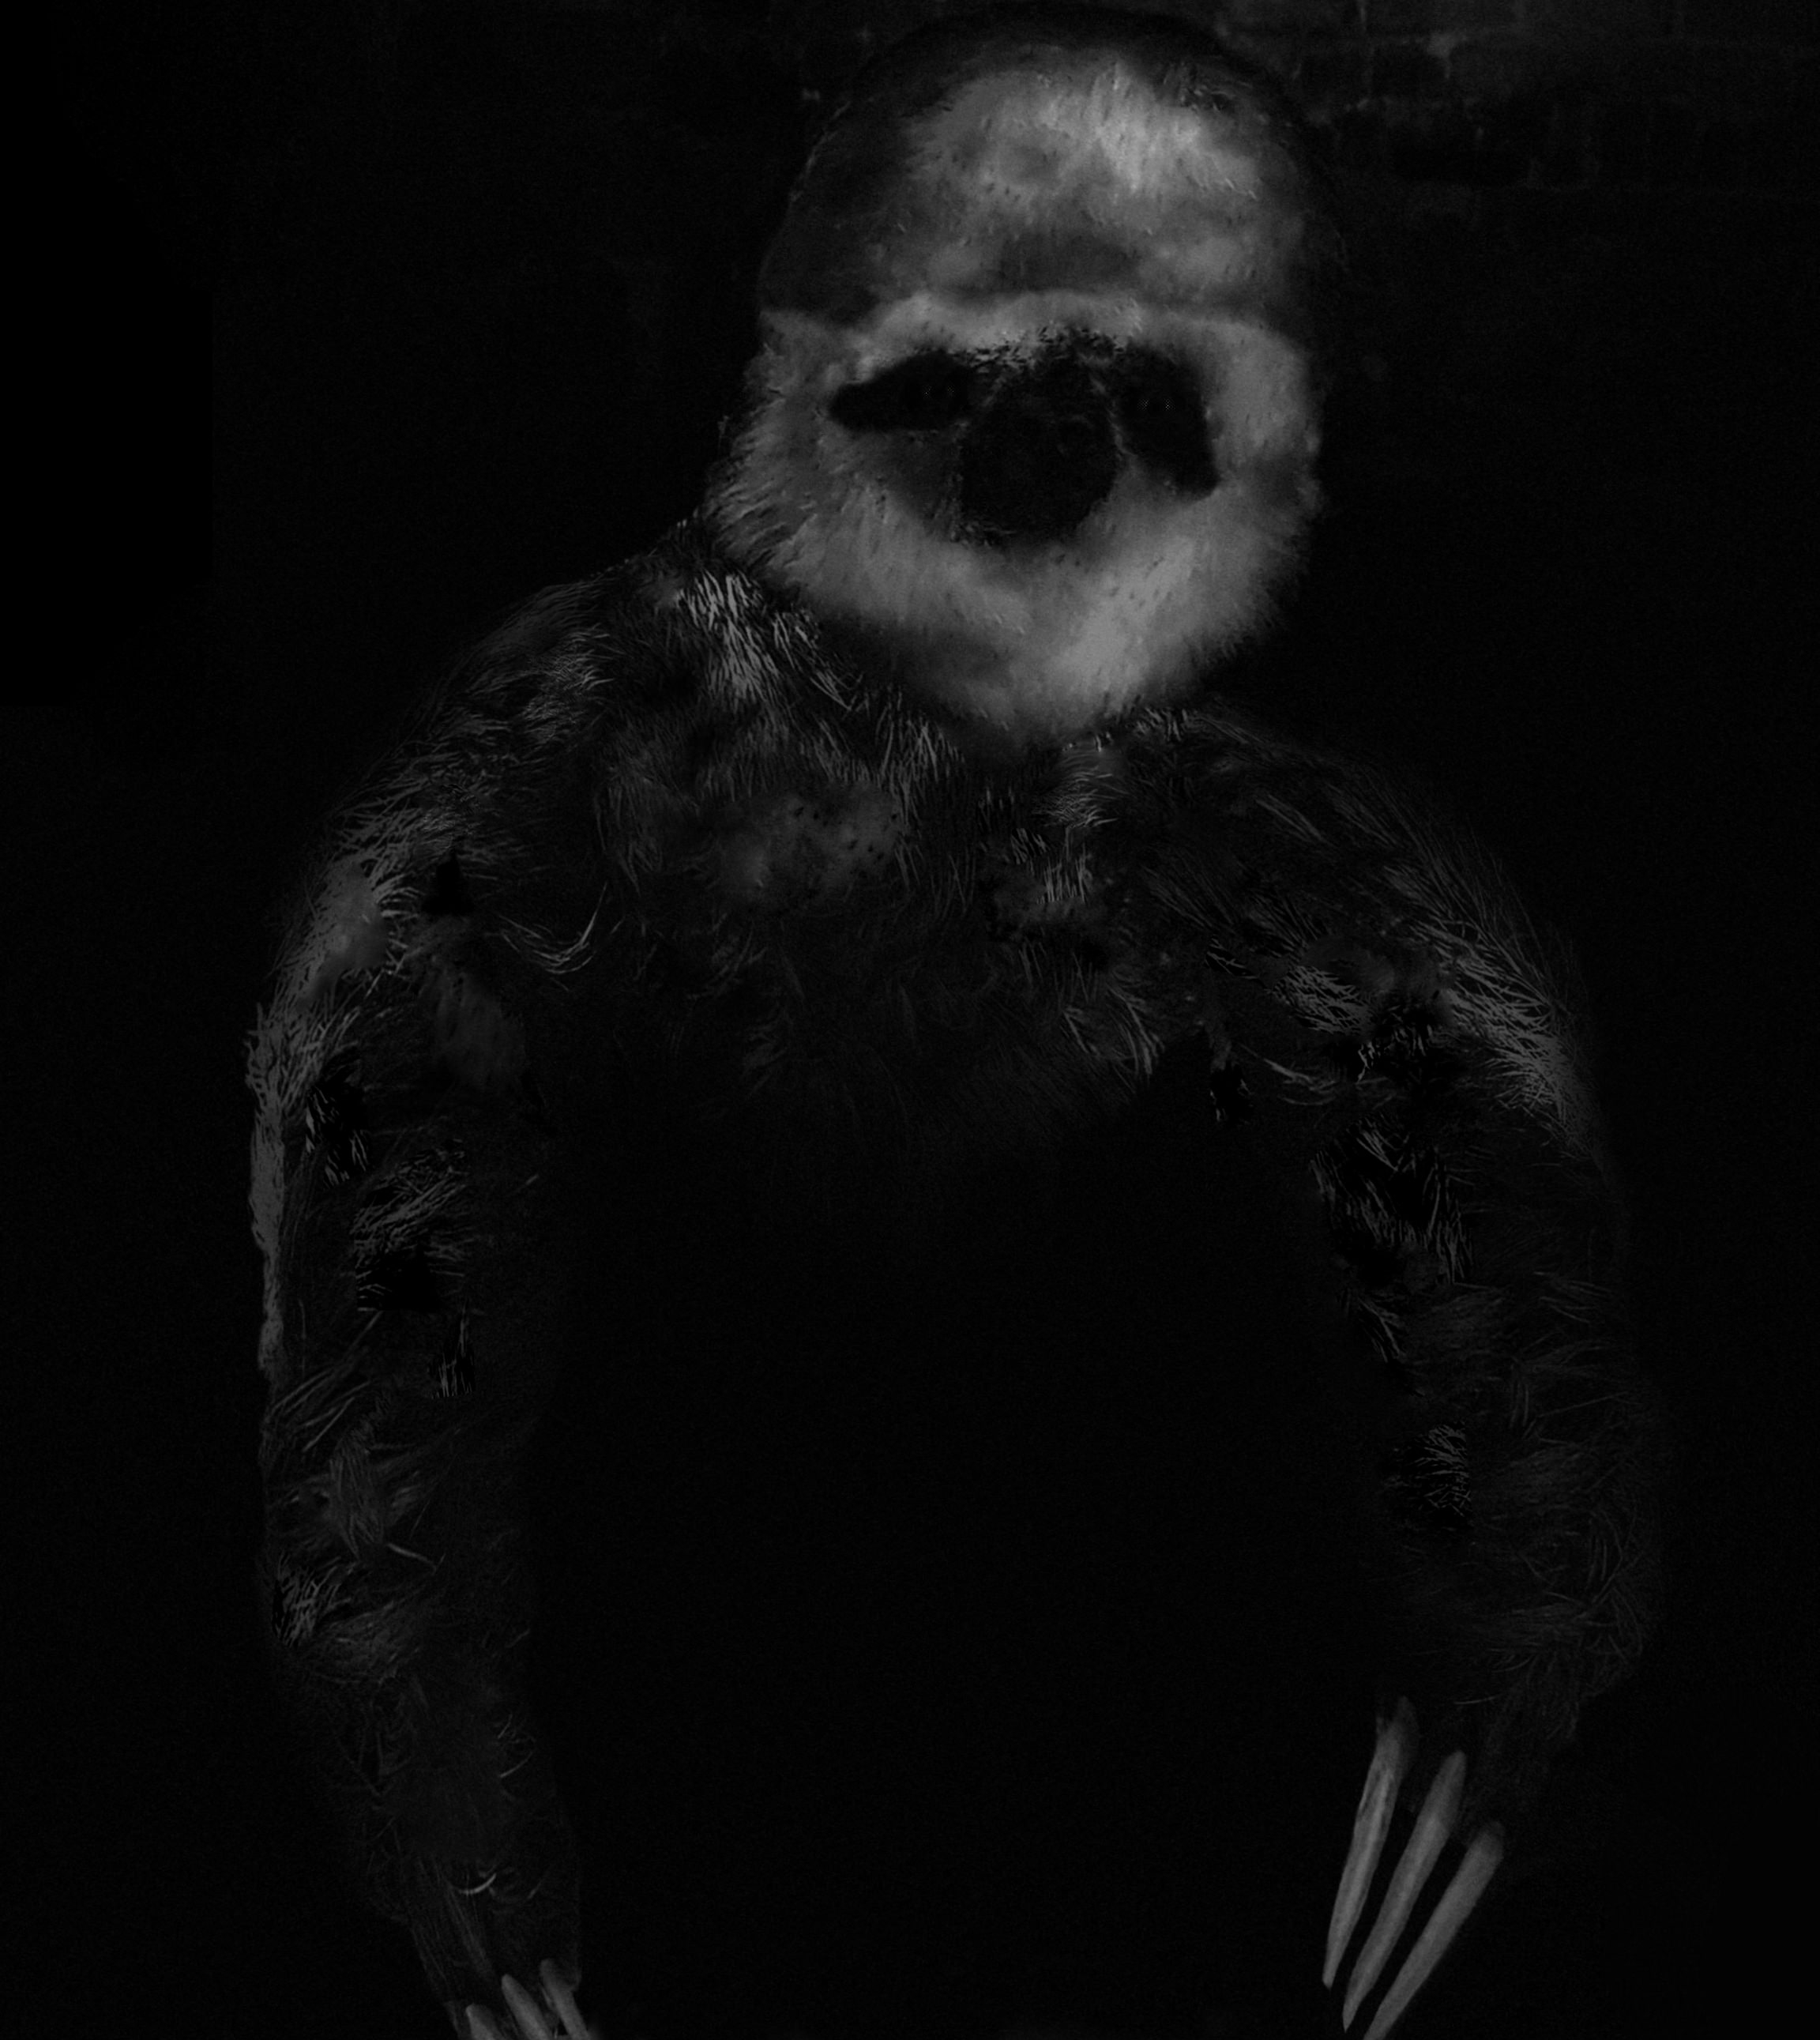 SCP-2774-A